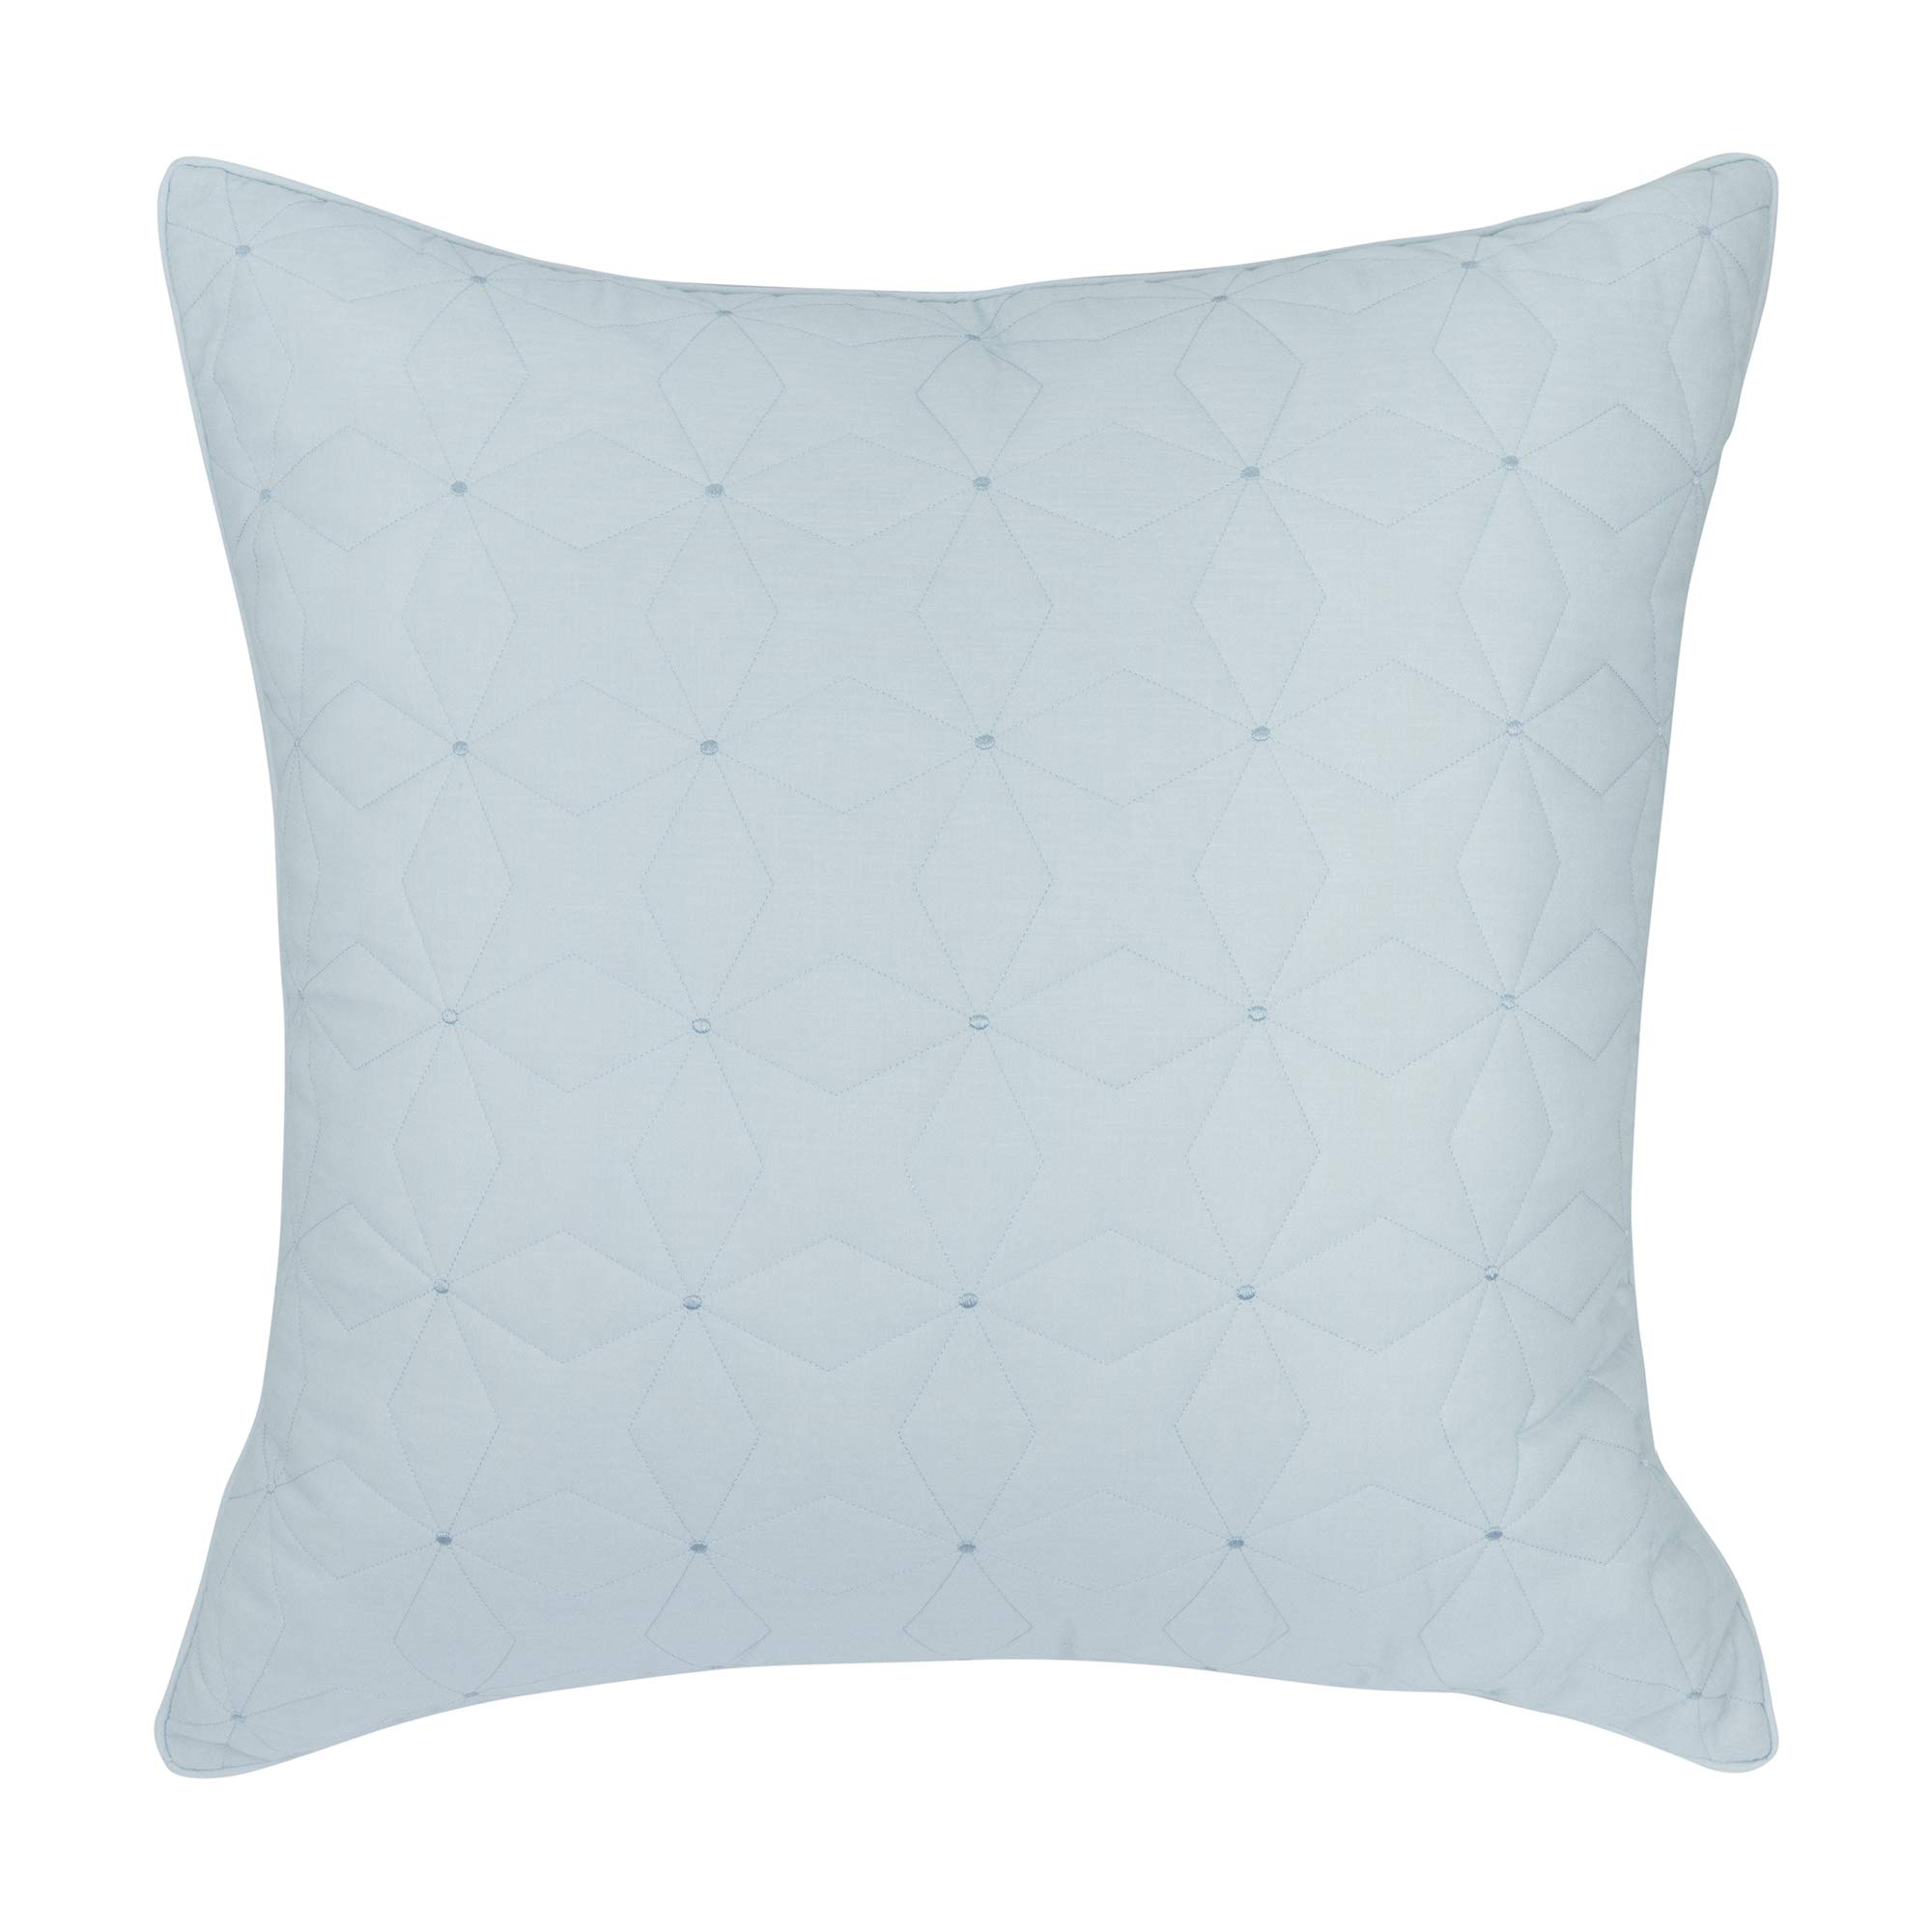 INK+IVY Embroidered Euro Sham With White Finish II11-600